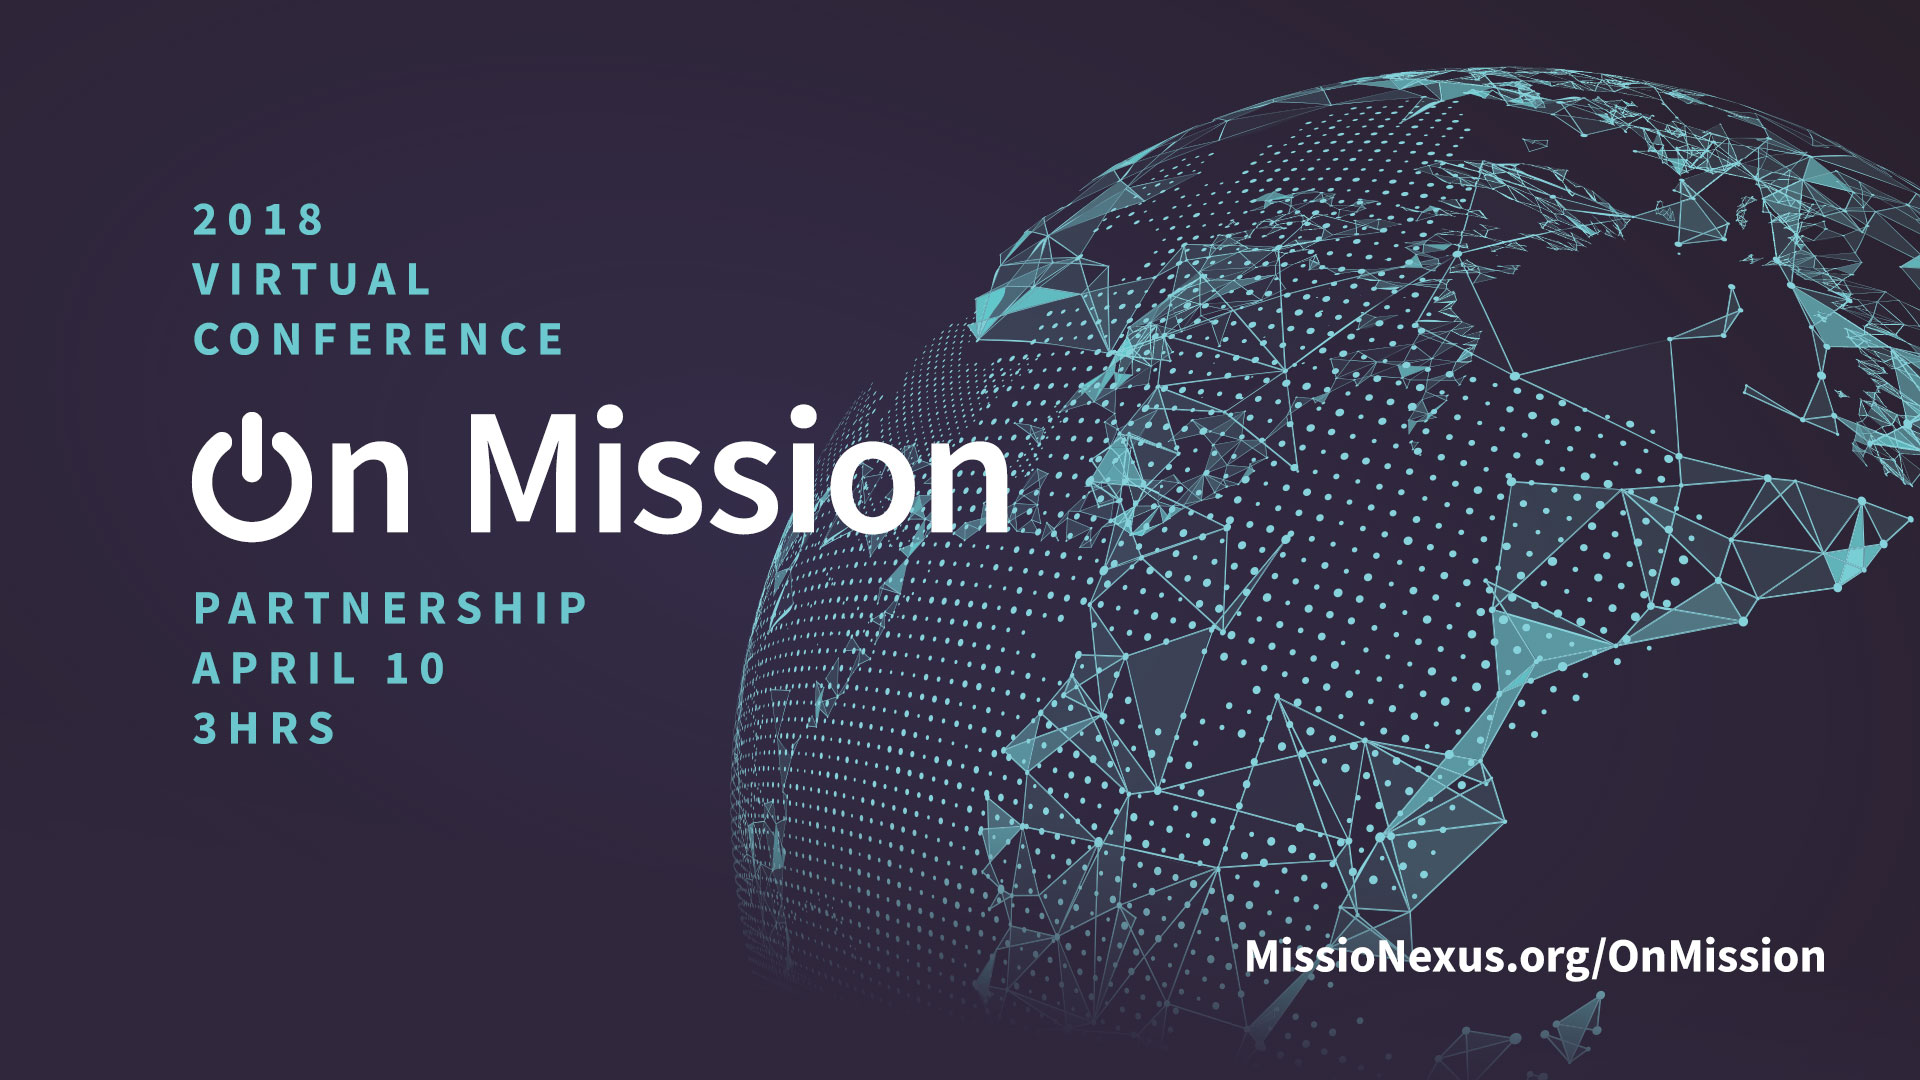 OnMission 2018